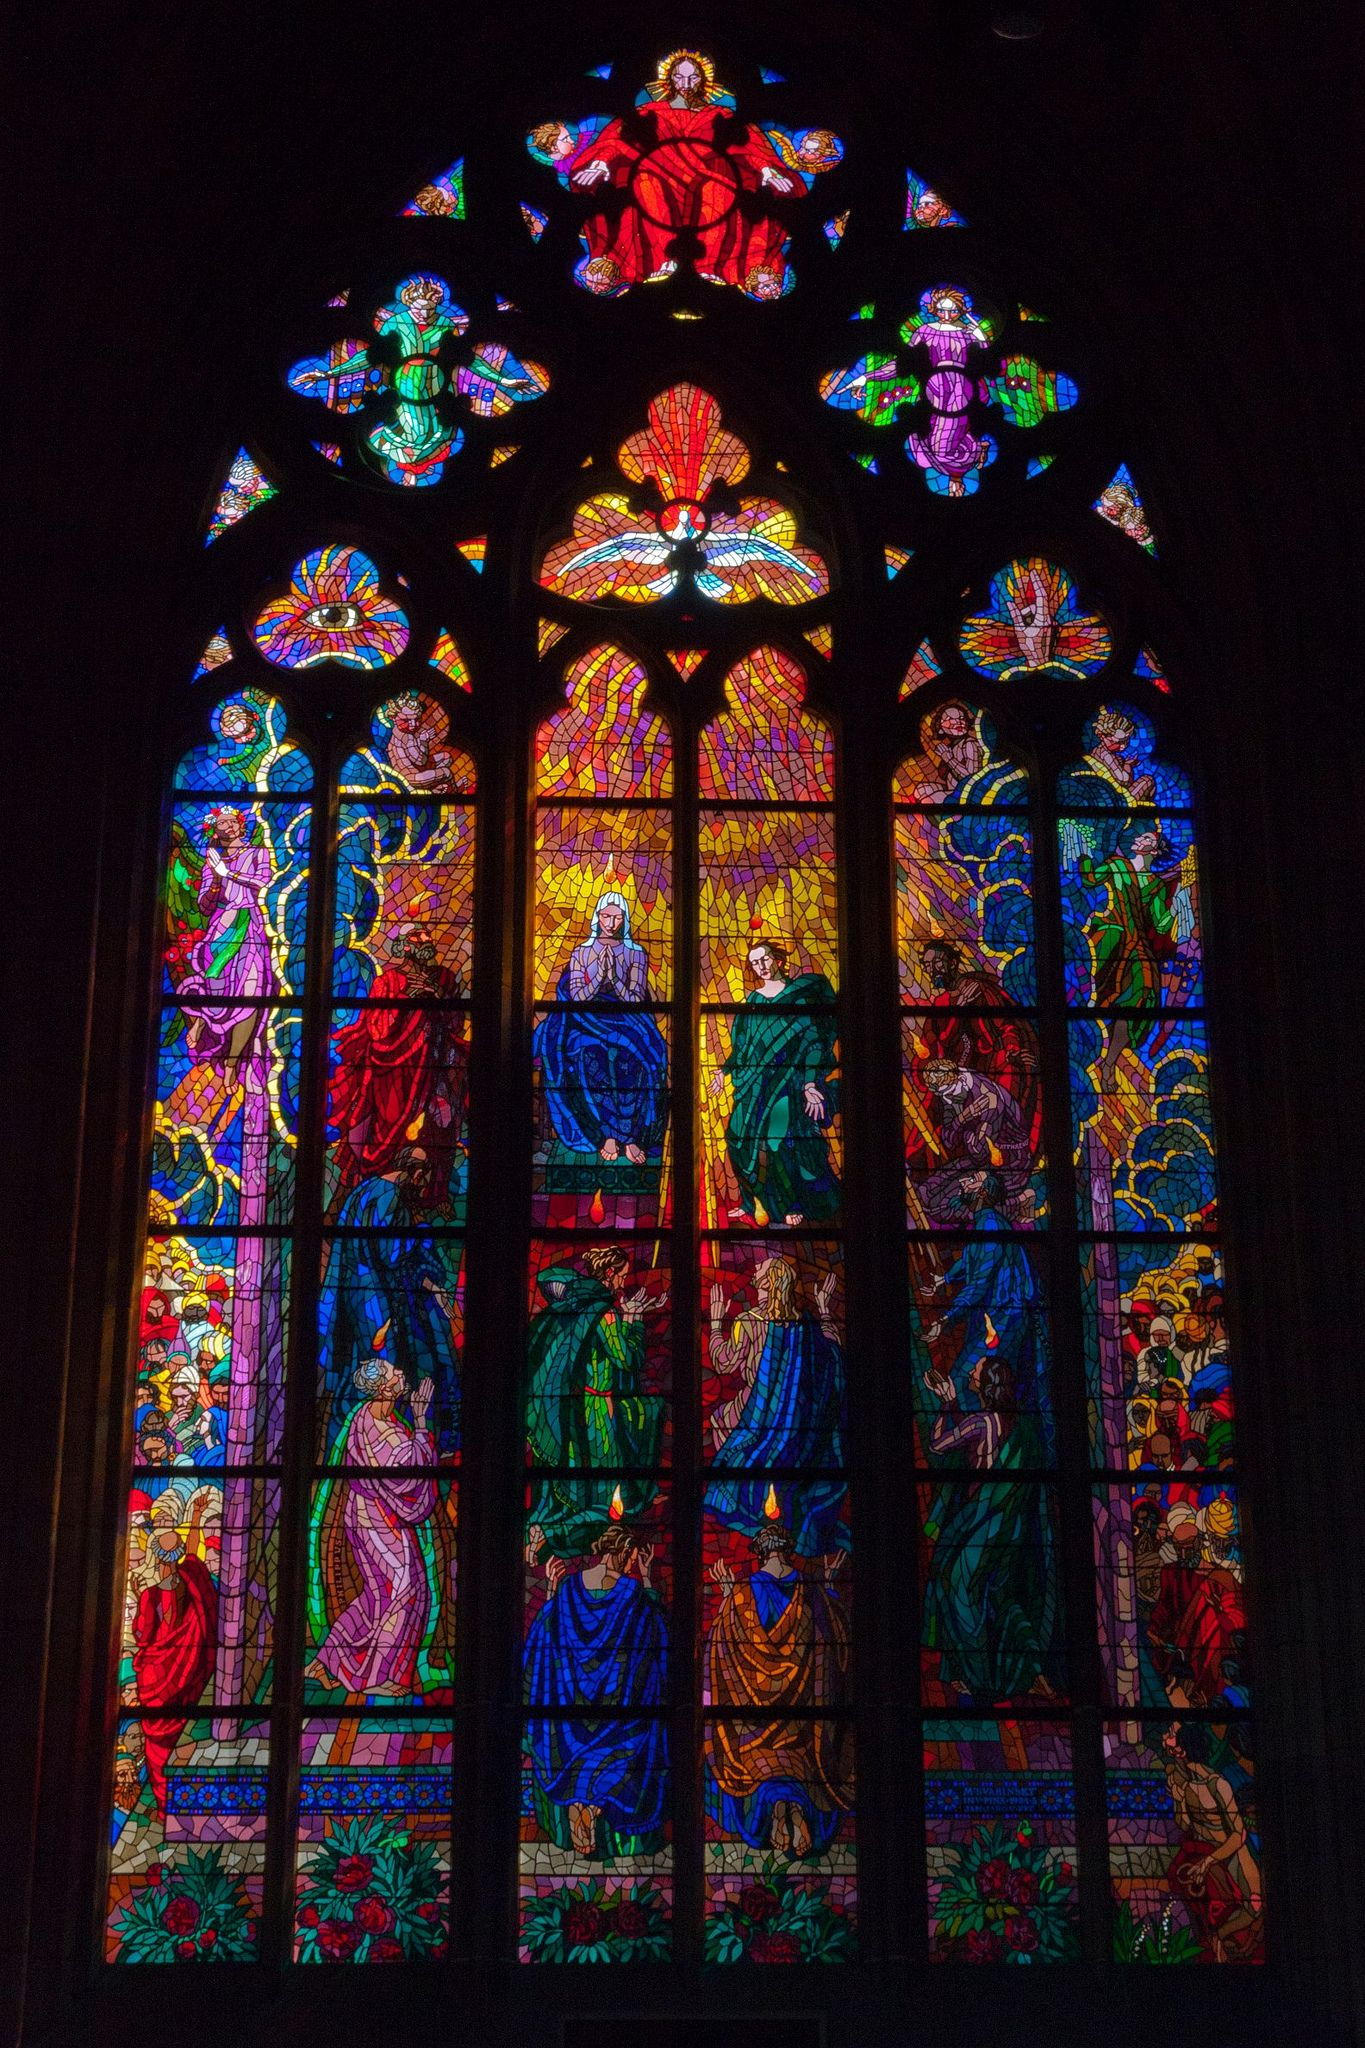 Franklin art glass studios inc clear cotswold glass 3 320 - Saint Vitus Cathedral Prague Stained Glass Window